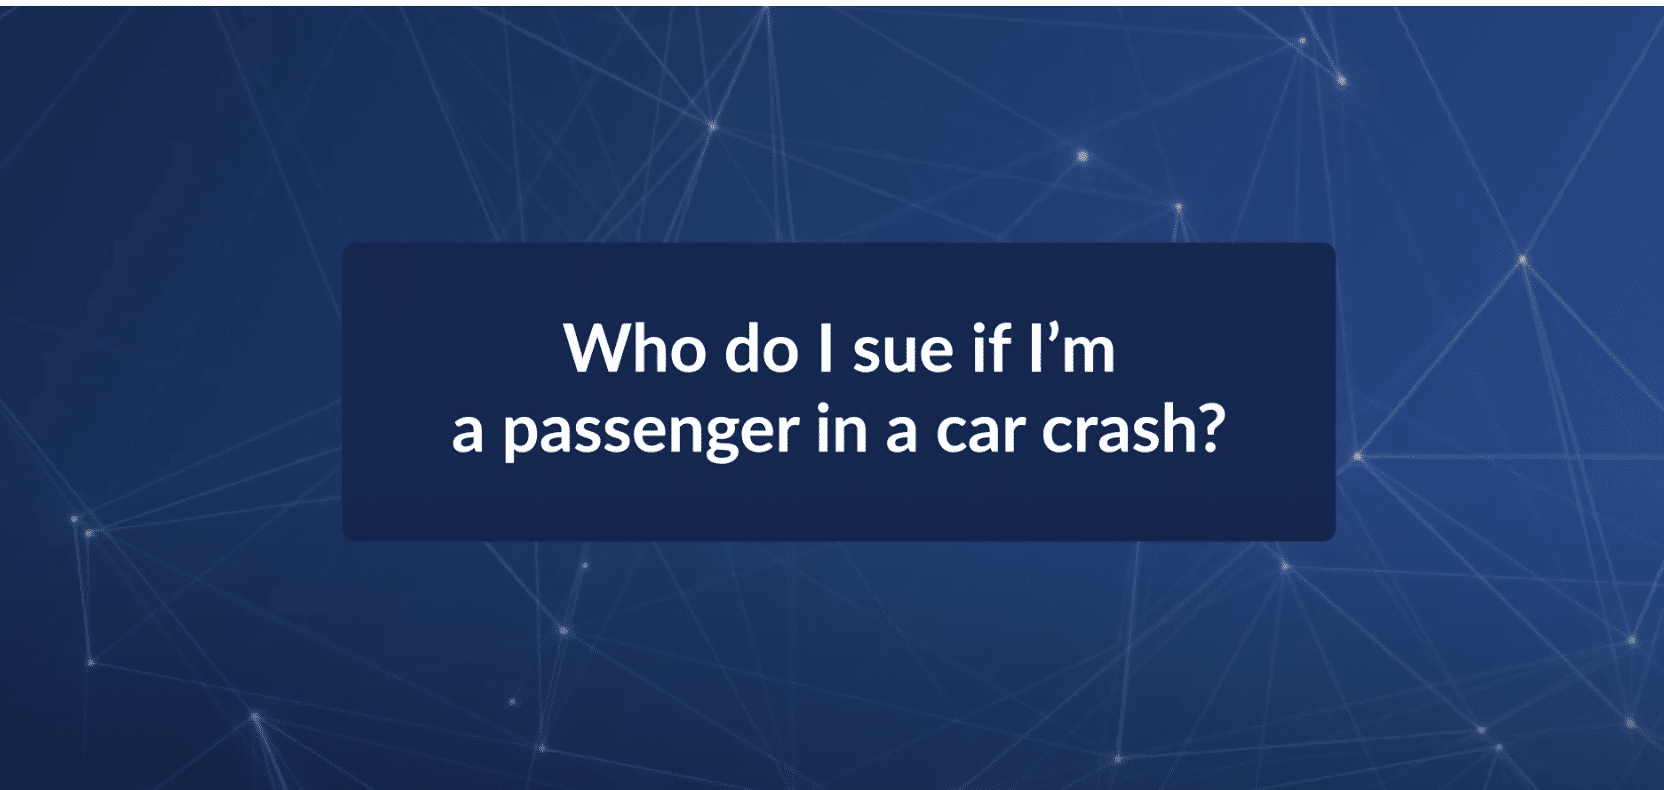 Who Do I Sue If I'm a Passenger In a Car Crash?